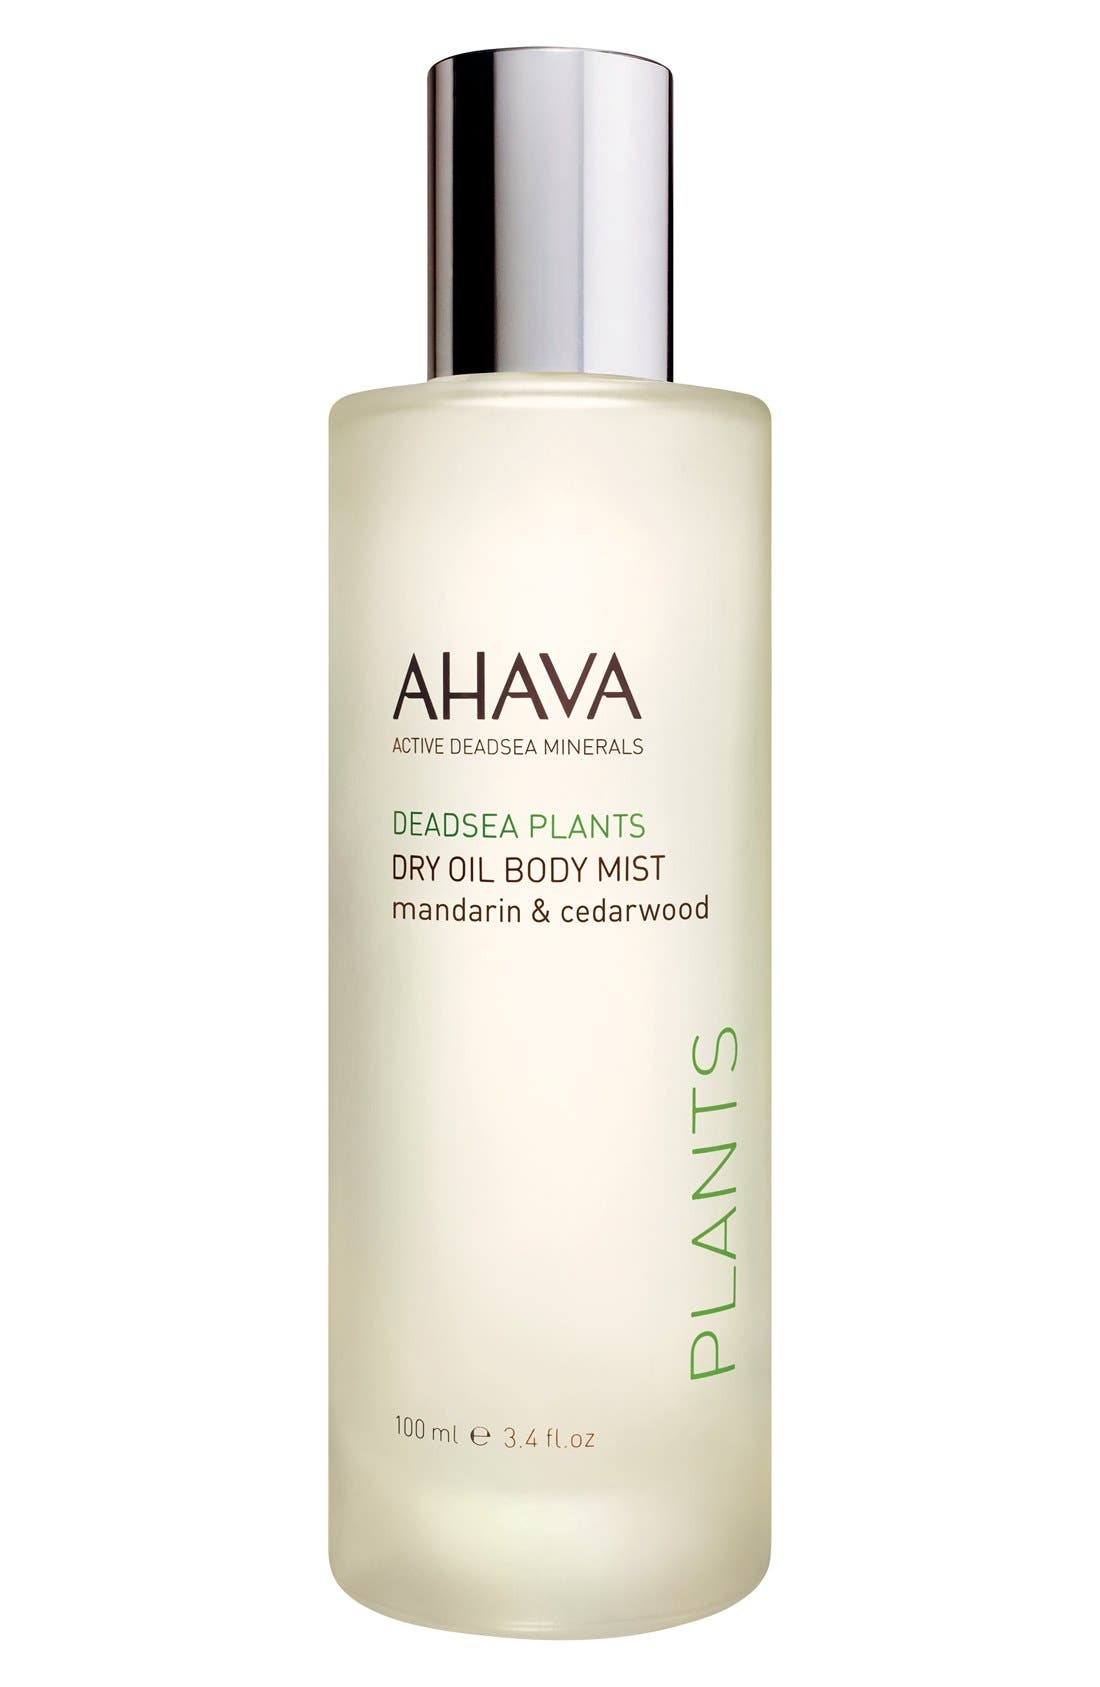 AHAVA Dry Oil Body Mist